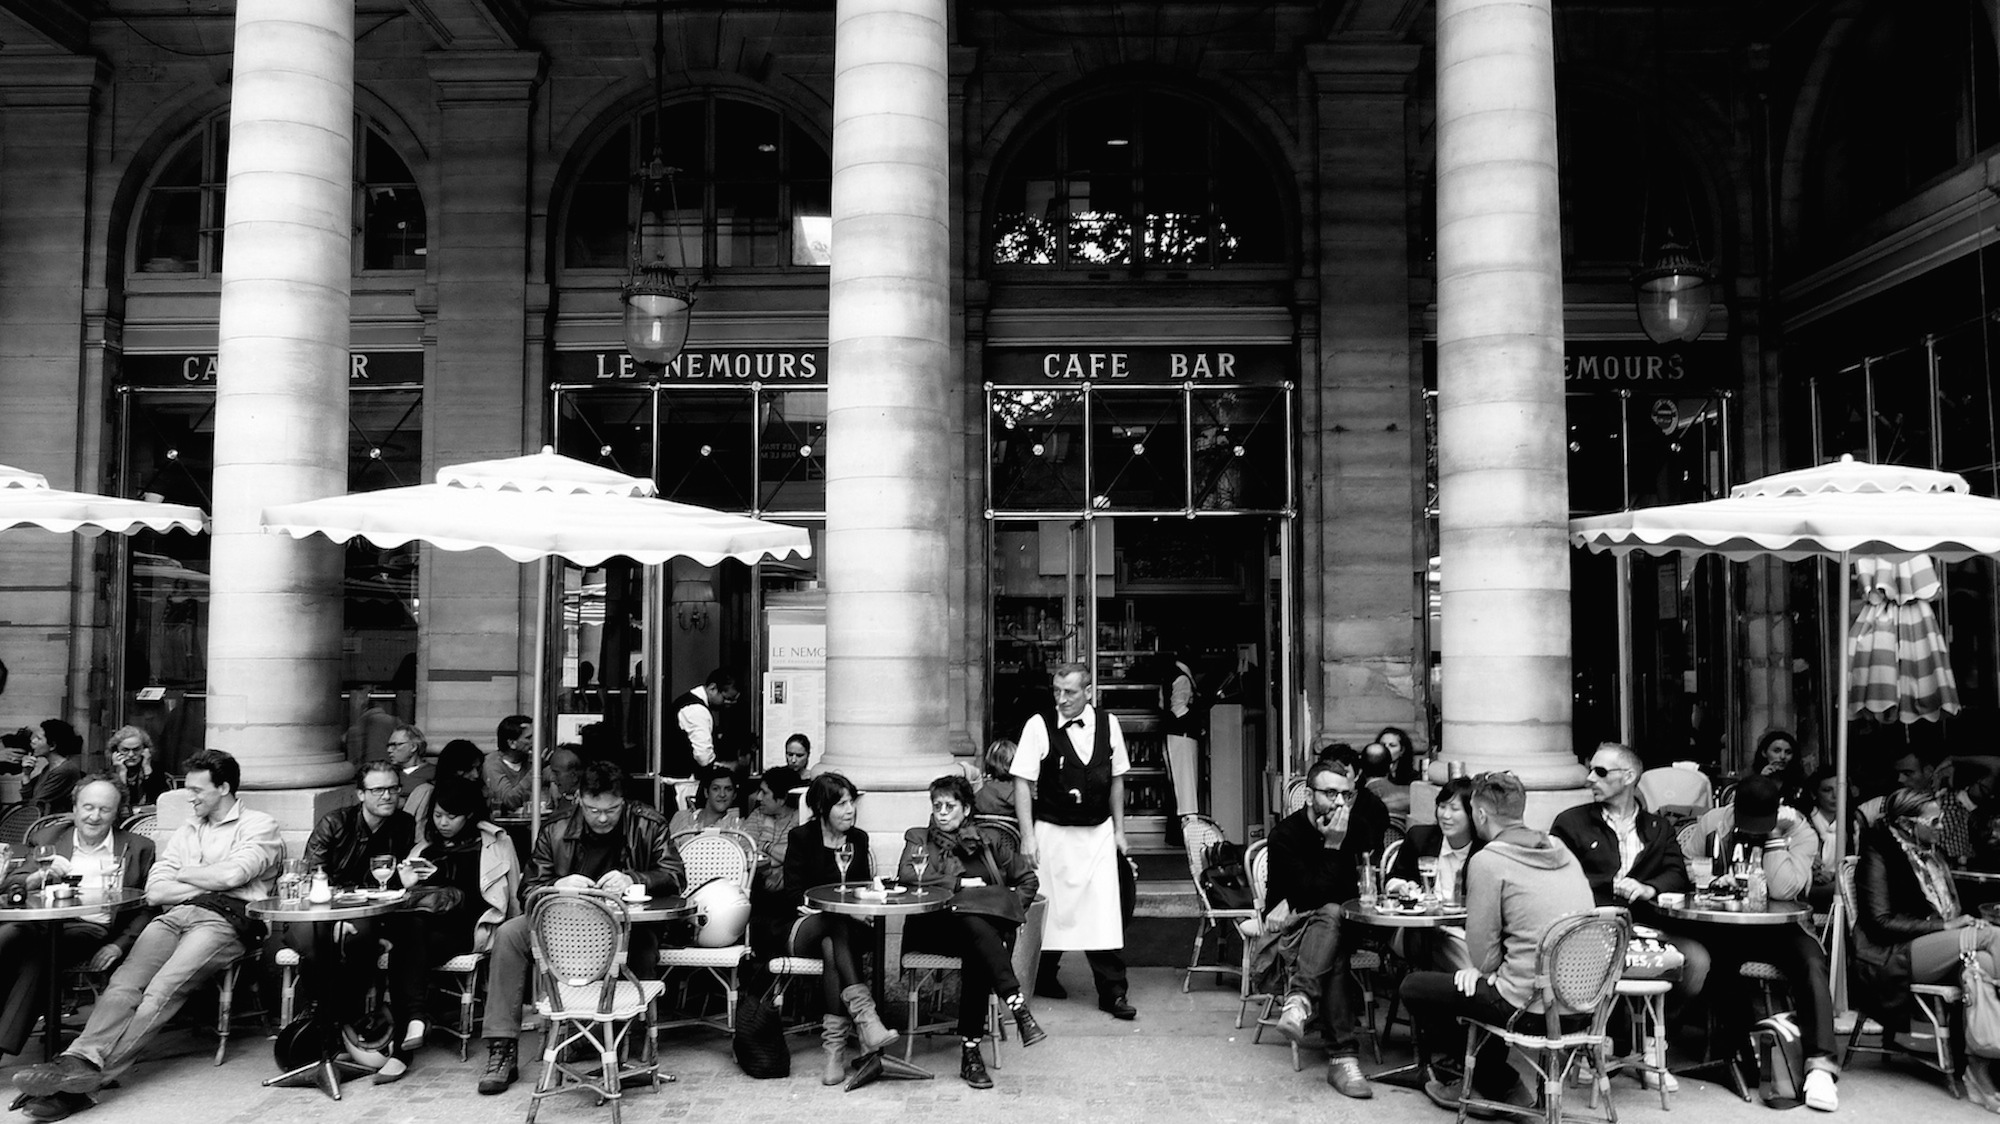 The famous Café Nemours in Paris with people sat having coffee and drinks on the terrace is a great place to listen to people speaking French.